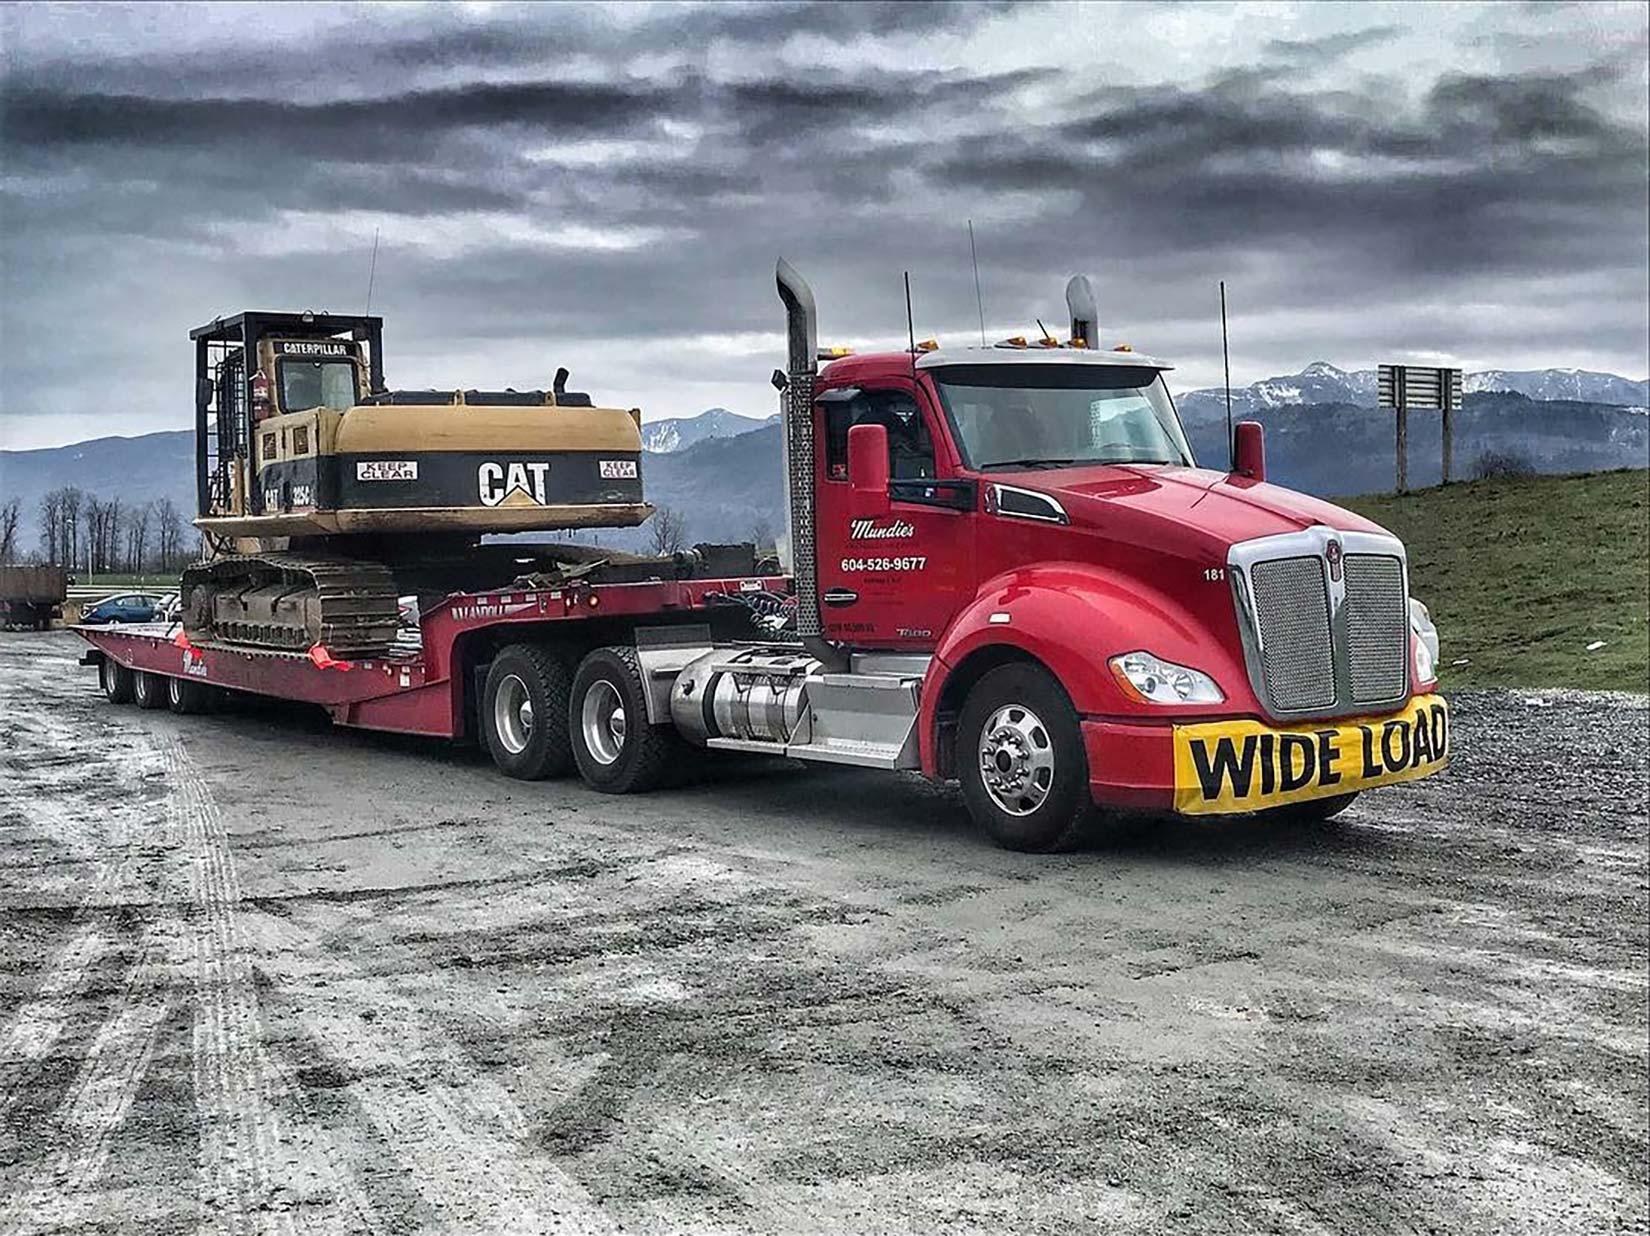 Our tow truck can help with your commercial needs